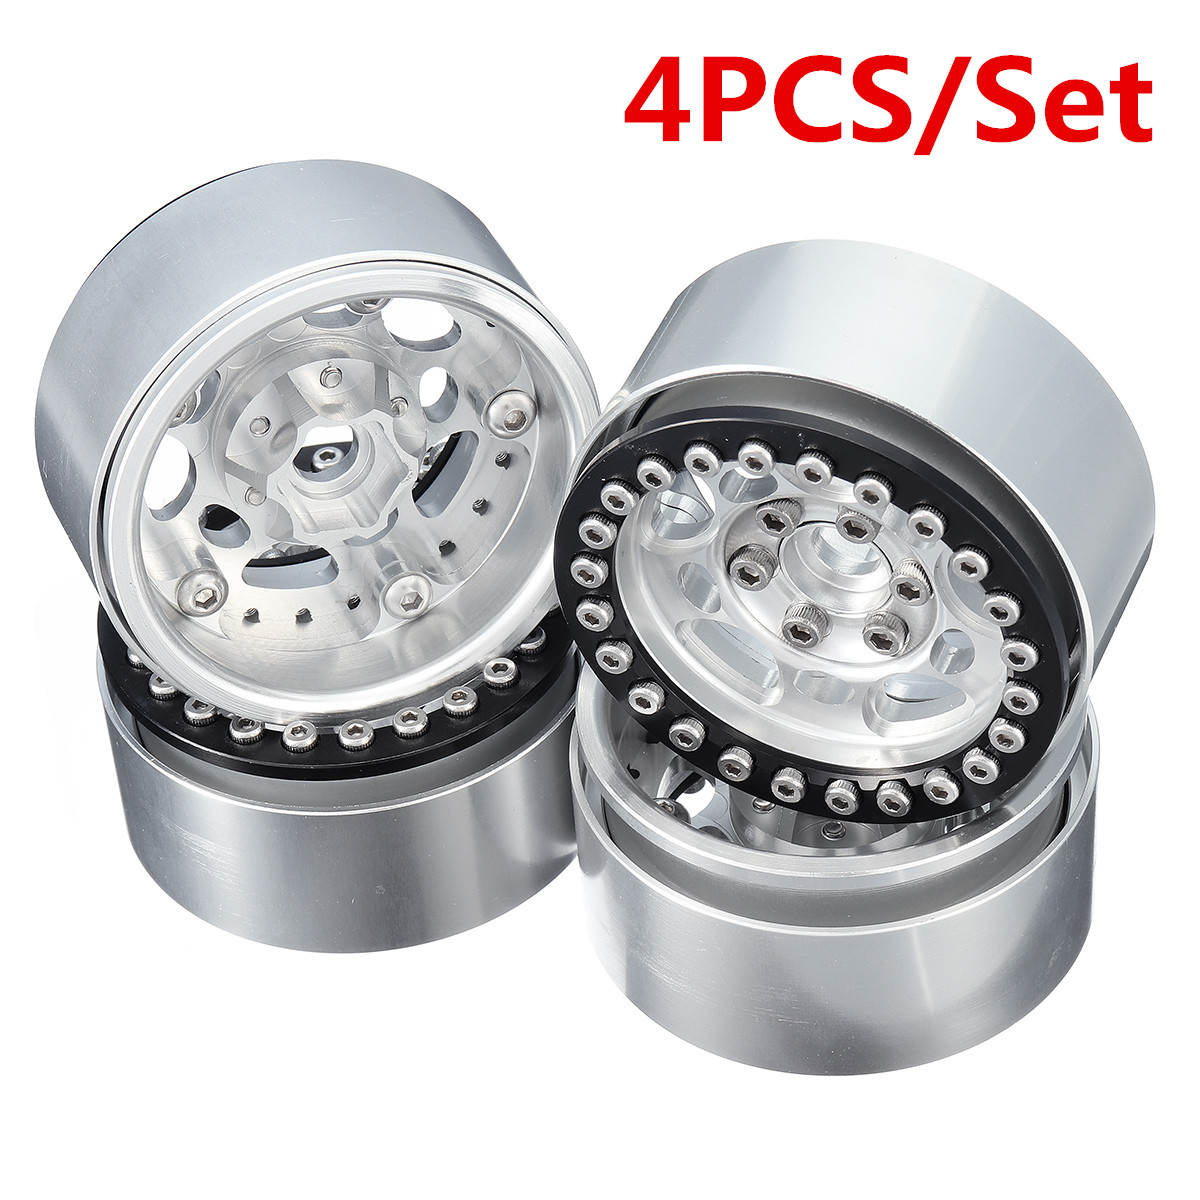 Remote Control Toys 4pc 1.9inch Aluminum Beadlock Wheel Rims For 1/10 Rc Crawler Traxxas Trx-4 #45 Car Parts Silver Fashionable Patterns